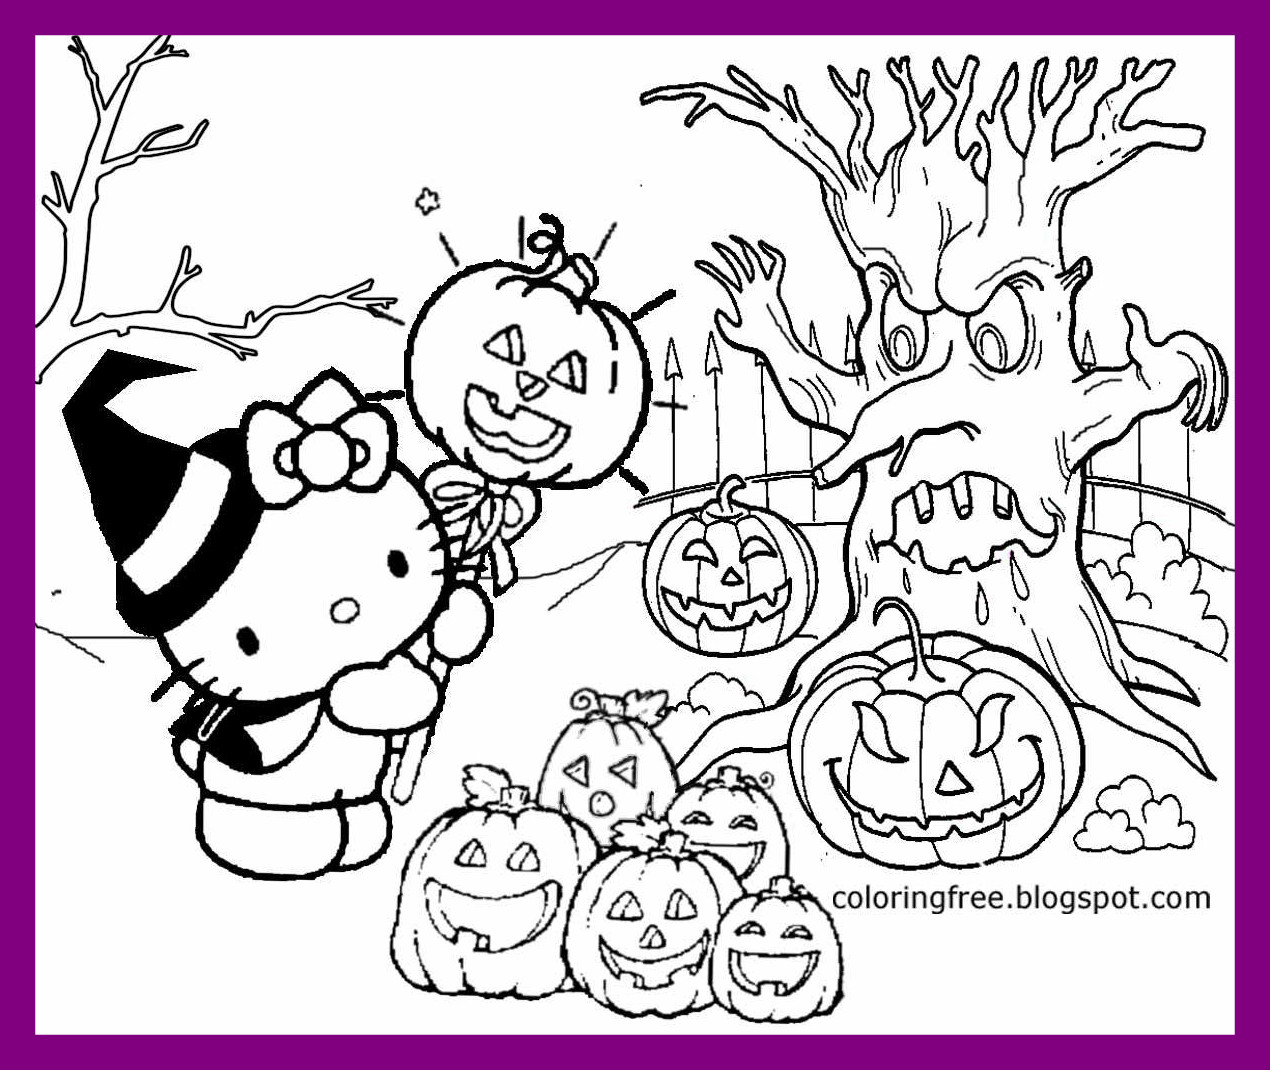 1270x1070 Appealing Hello Kitty Halloween Coloring Page Newyork Rp Pics